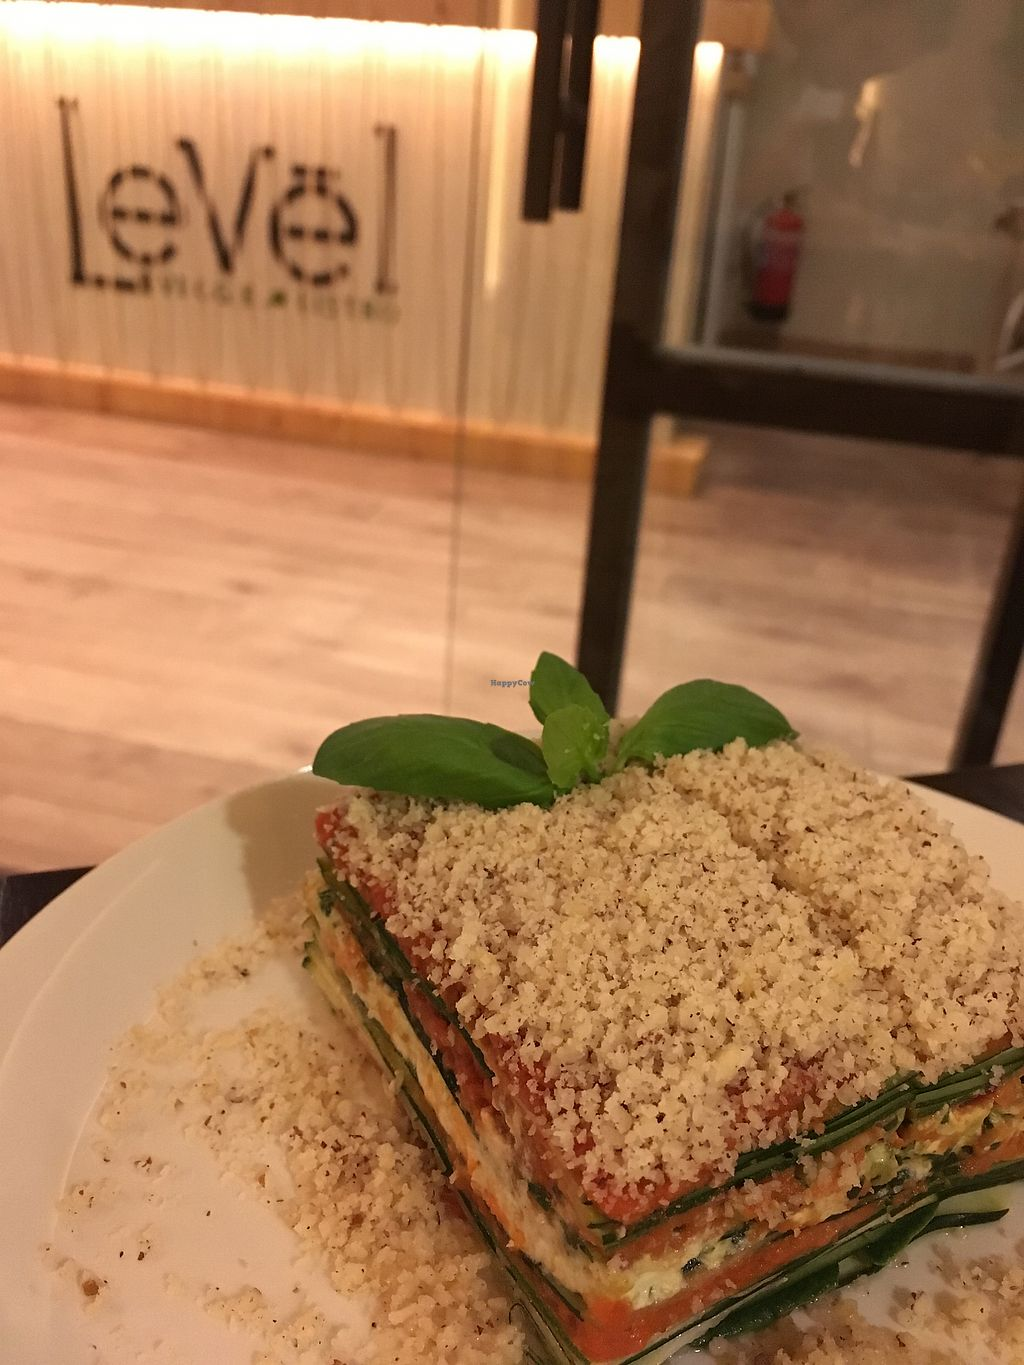 "Photo of Level Veggie Bistro  by <a href=""/members/profile/Edu"">Edu</a> <br/>Lasaña vegetal <br/> October 12, 2017  - <a href='/contact/abuse/image/75754/314421'>Report</a>"